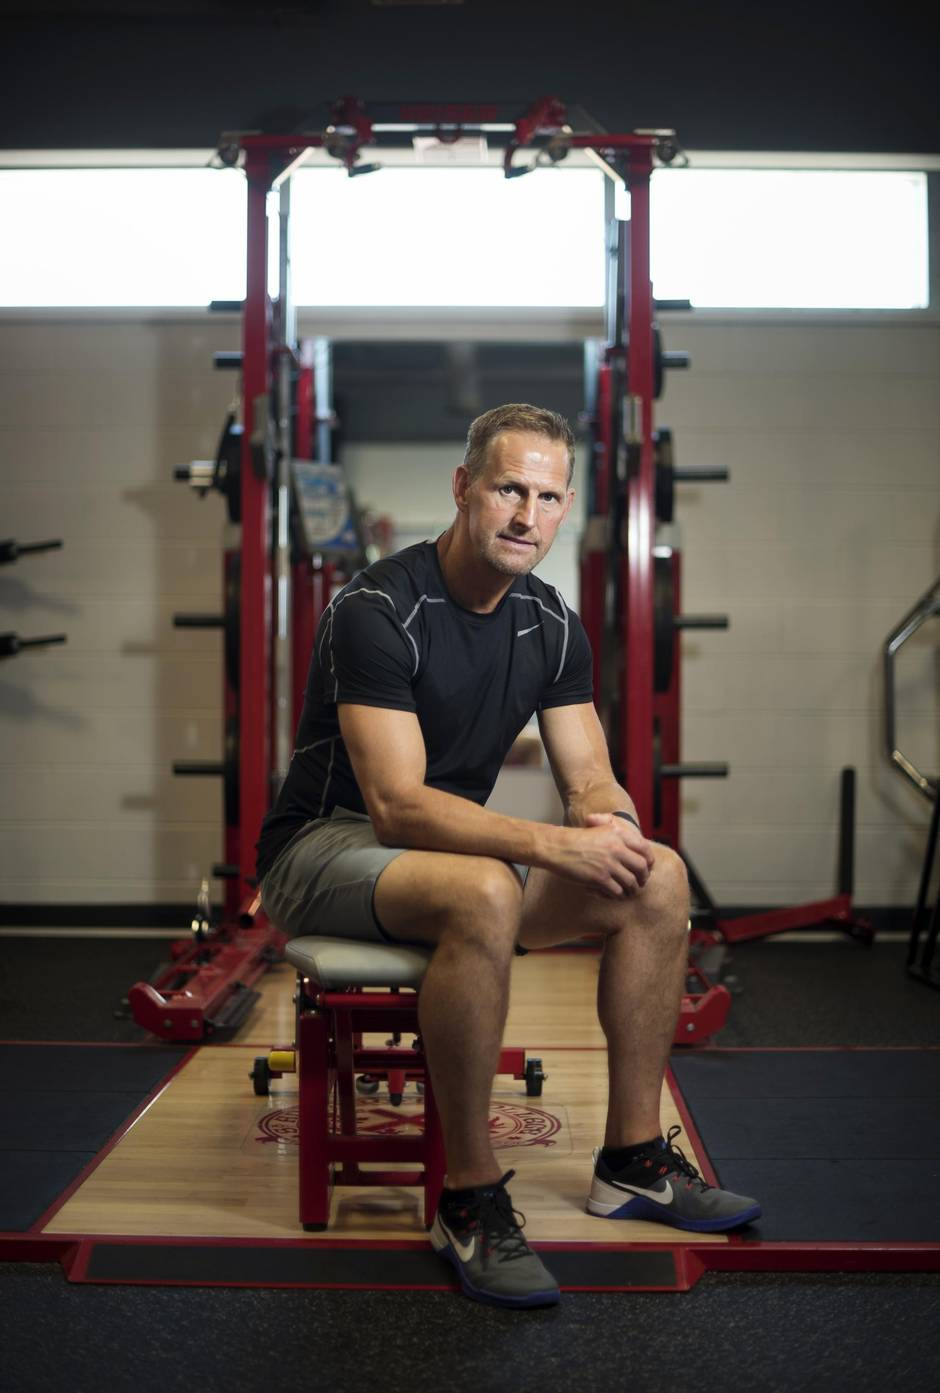 Gary Roberts Fitness Trainer And Former Nhl Player Has Helped Transform Connor Mcdavid From A Lean Adolescent Into Game Ready Professional